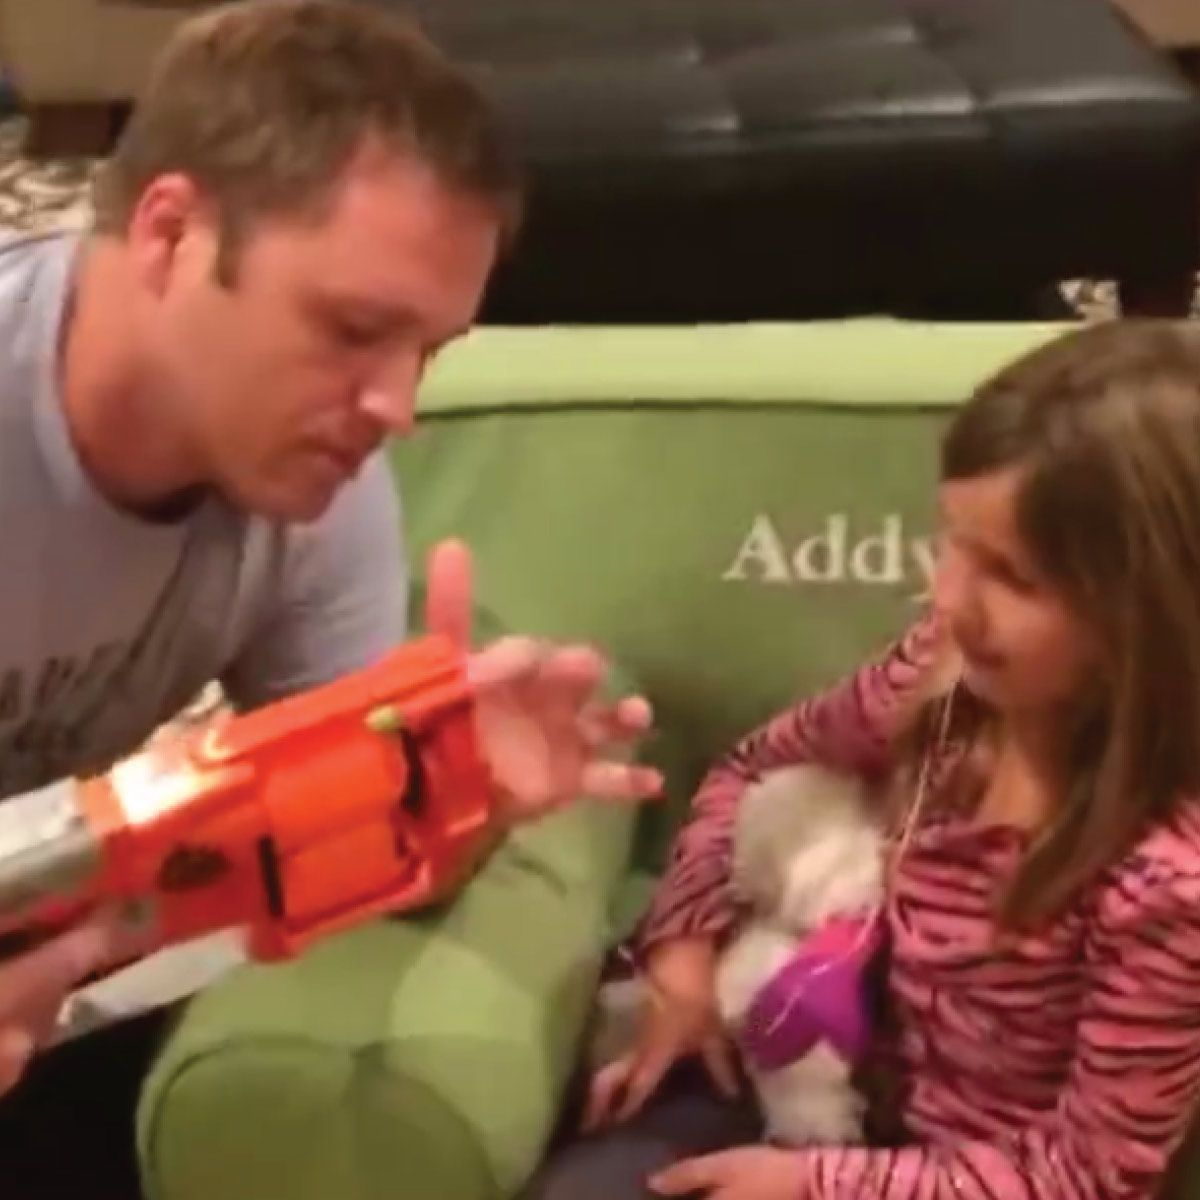 A new way to extract baby teeth?? THIS CREATIVE DAD let